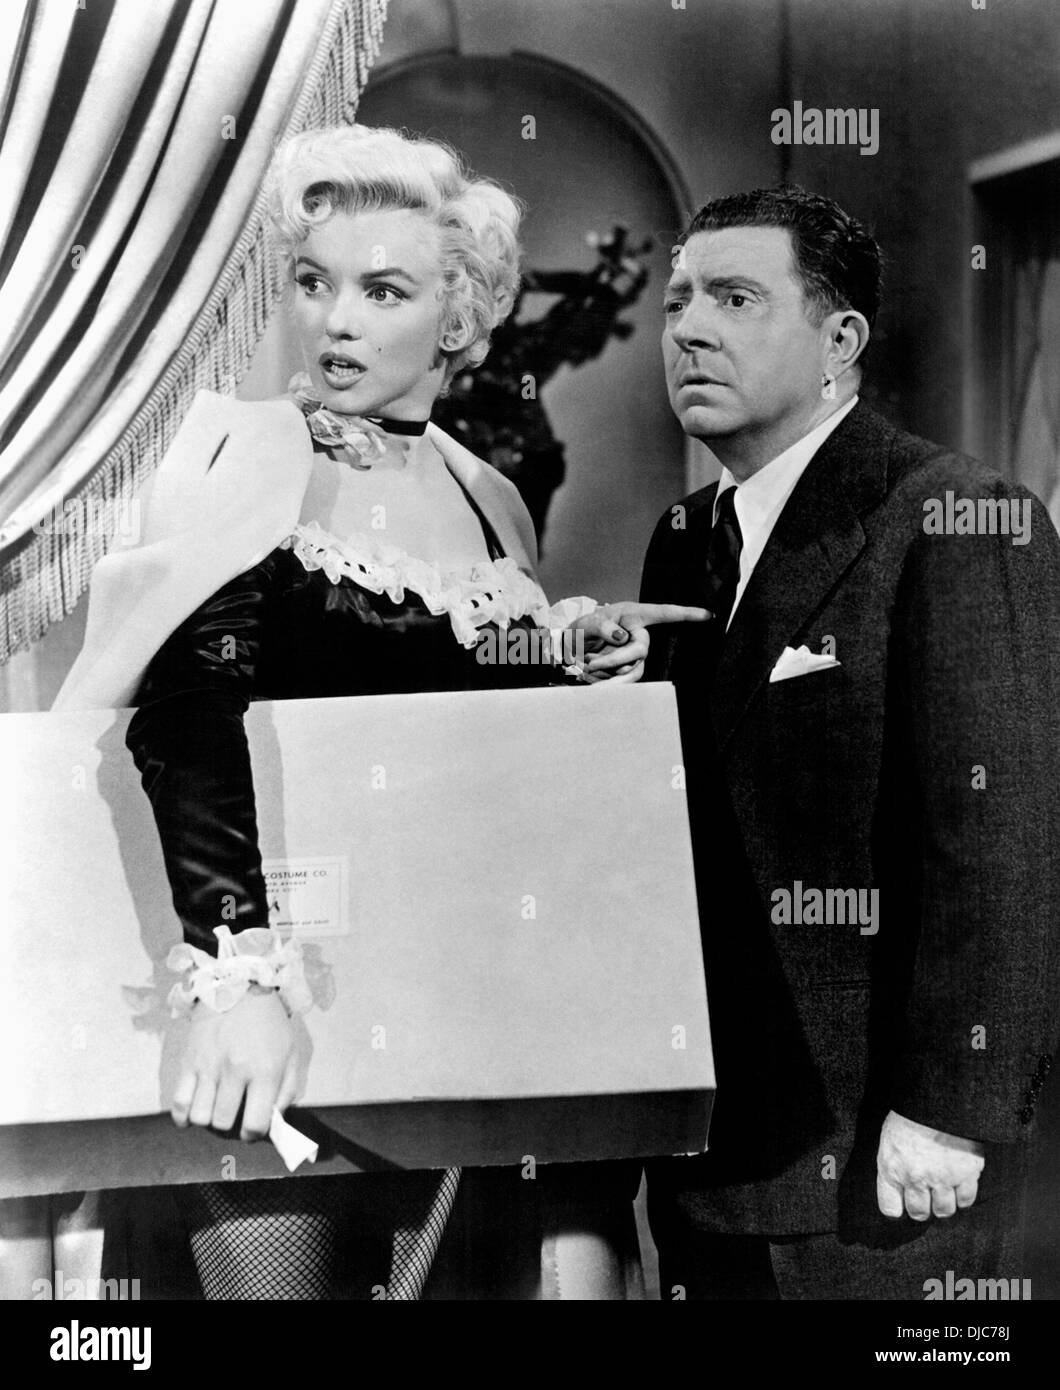 Marilyn Monroe and Frank McHugh on-set of the Film, There's No Business Like Show Business, 1954, 20th Century-Fox Film Corp. - Stock Image